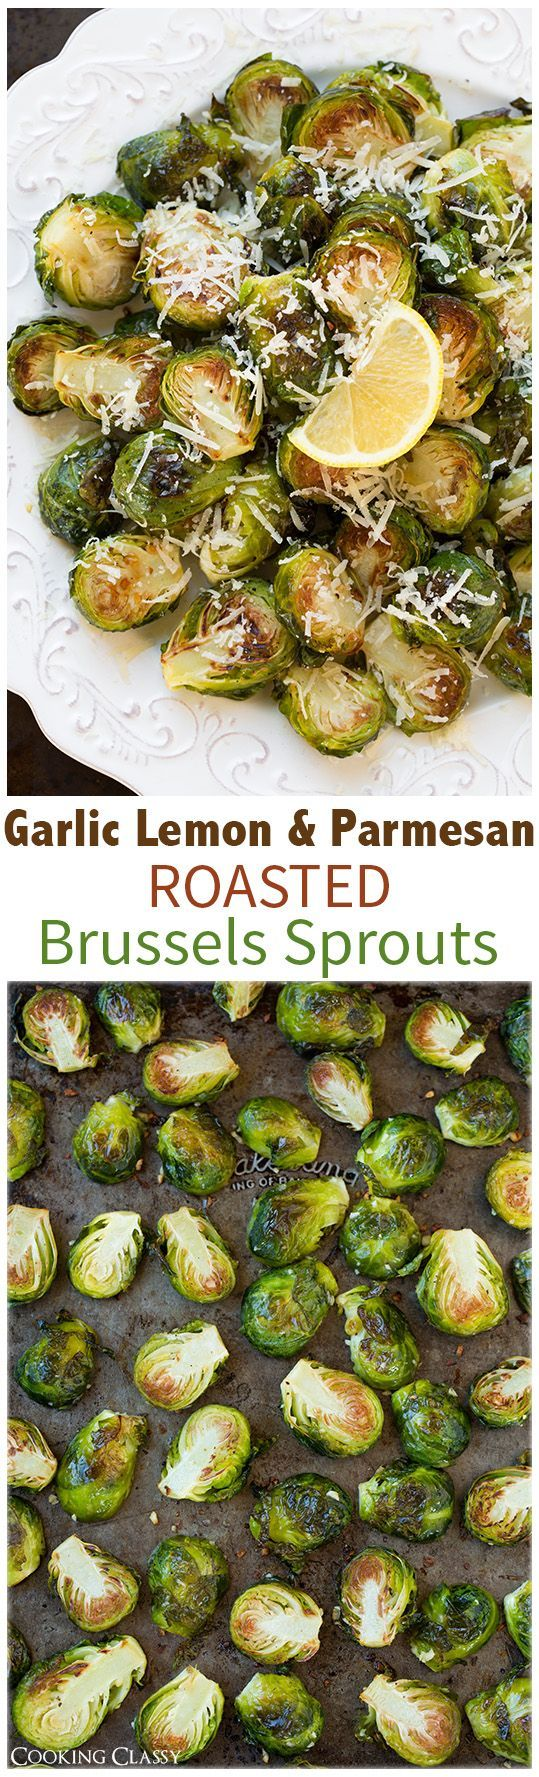 Garlic Lemon and Parmesan Roasted Brussels Sprouts - an easy side that is full of incredible flavor! So delicious! #recipe #side